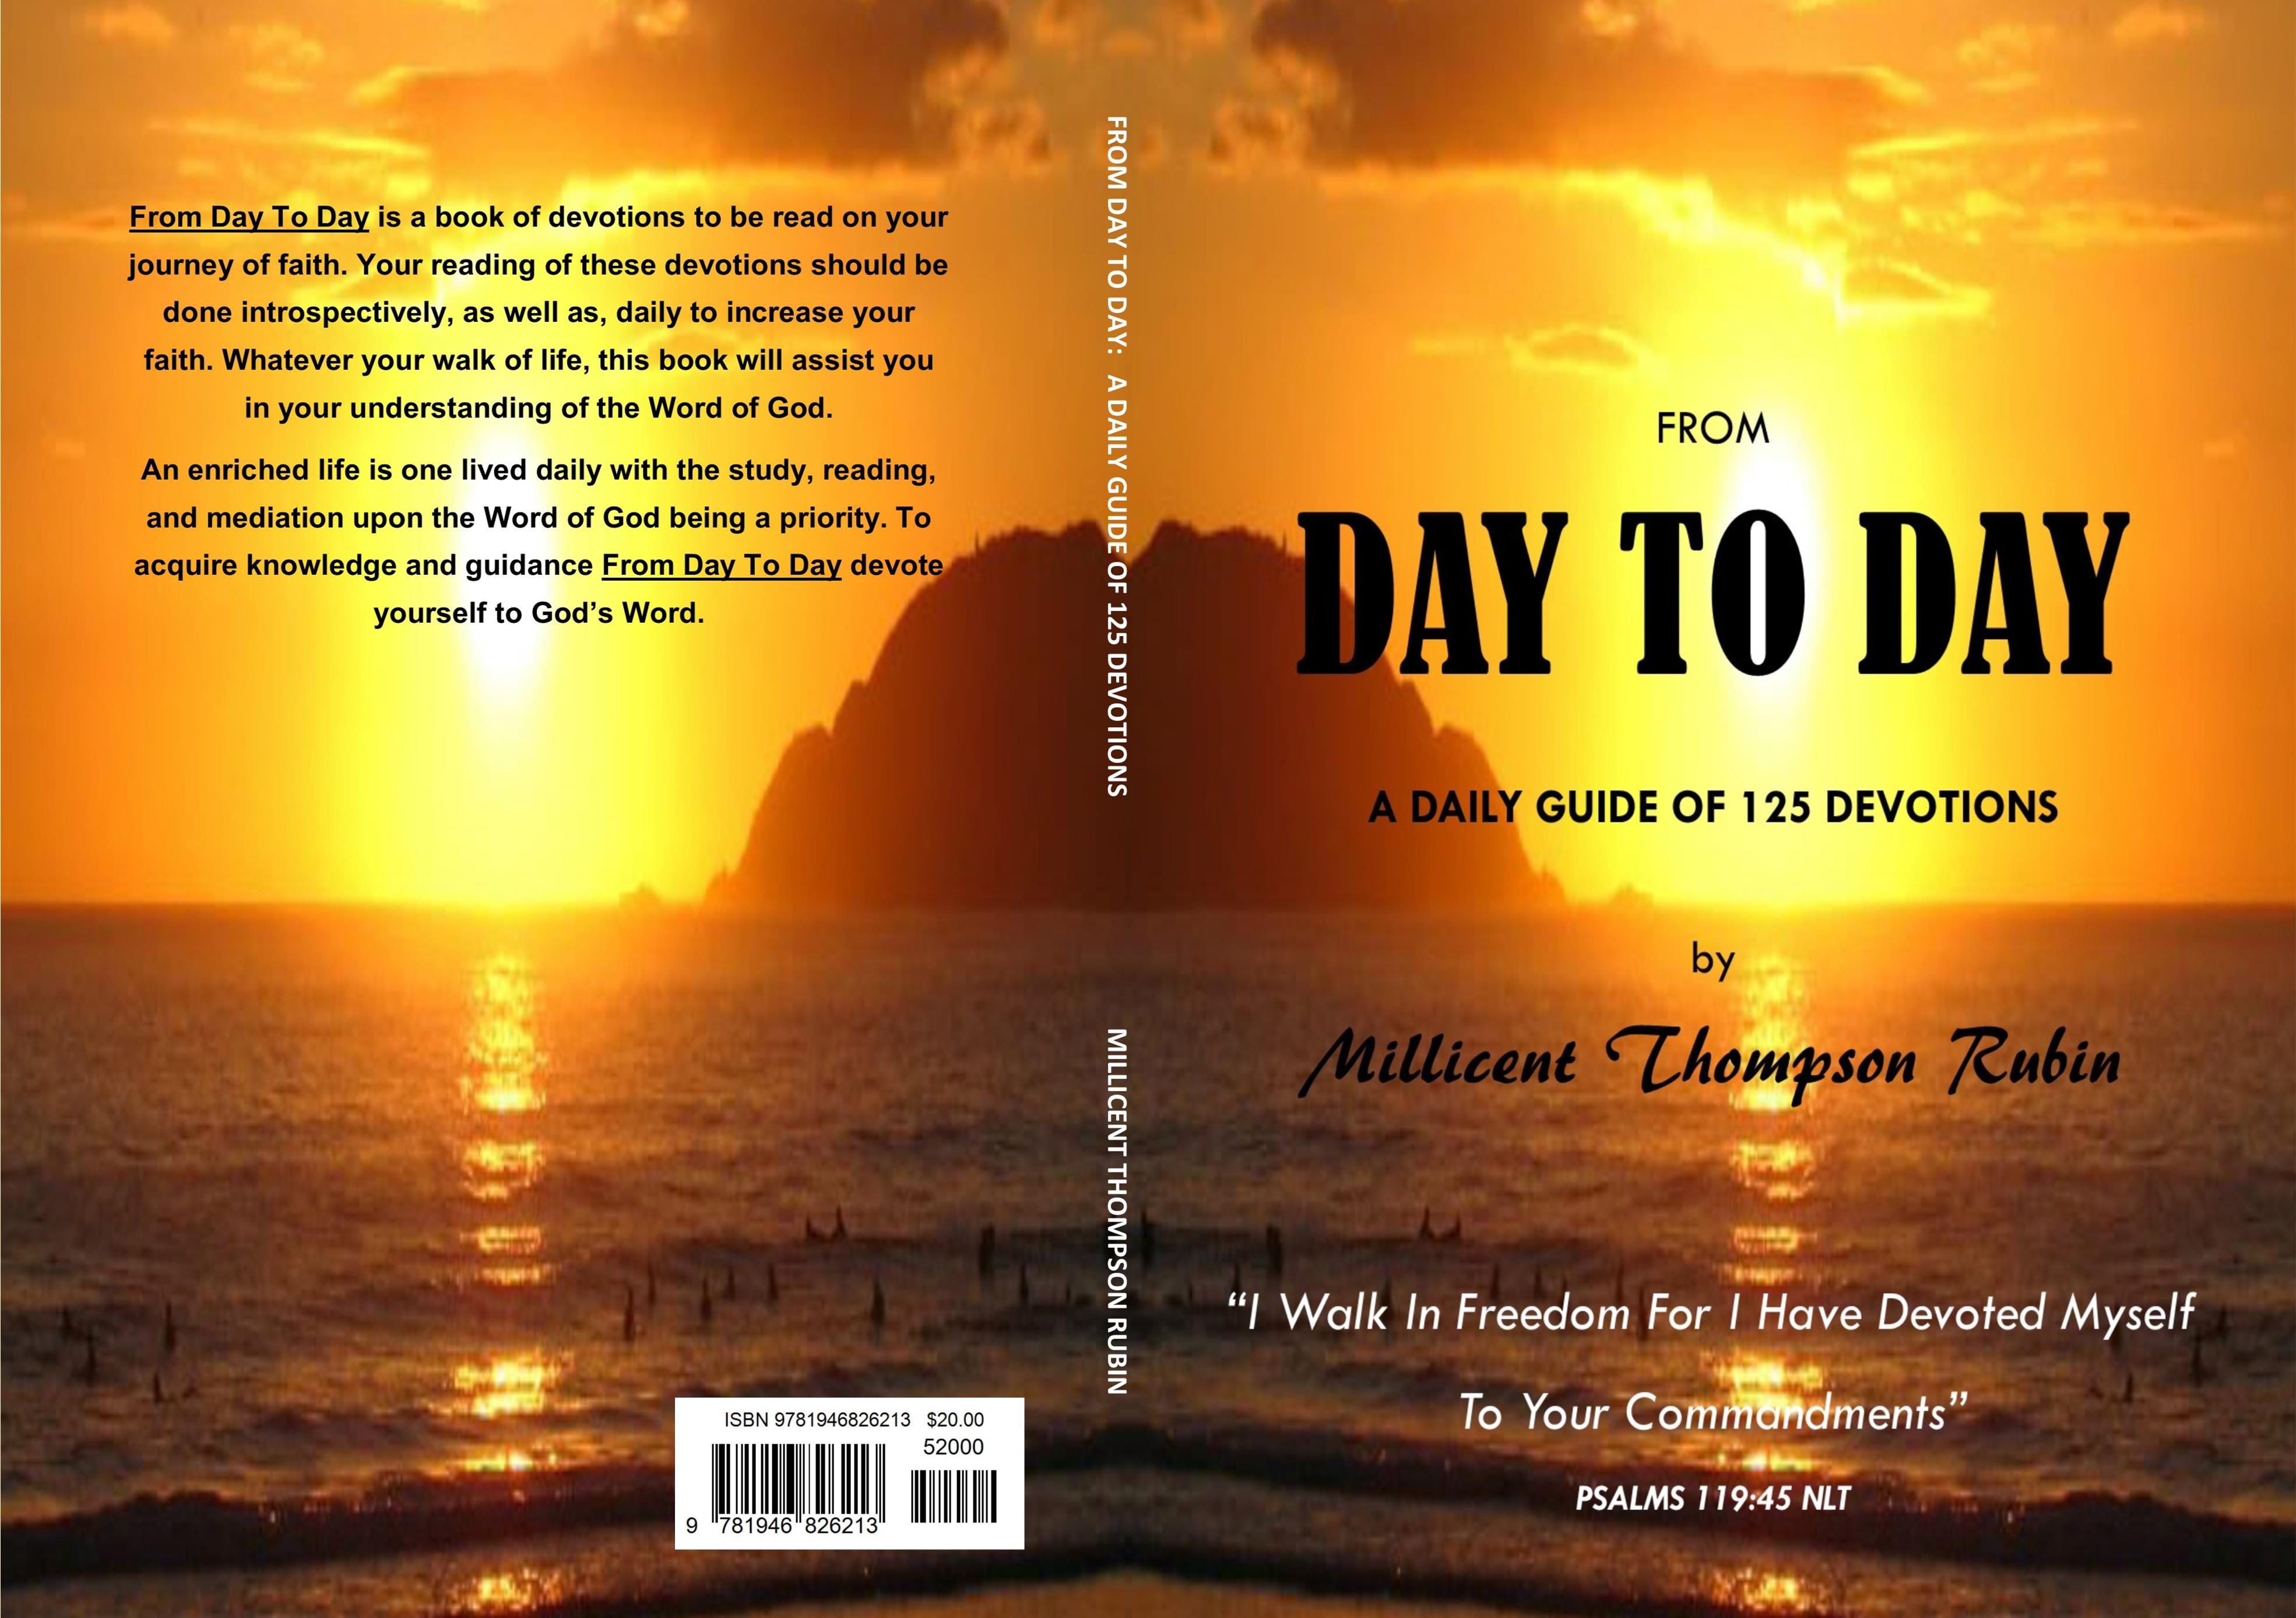 From Day To Day cover image